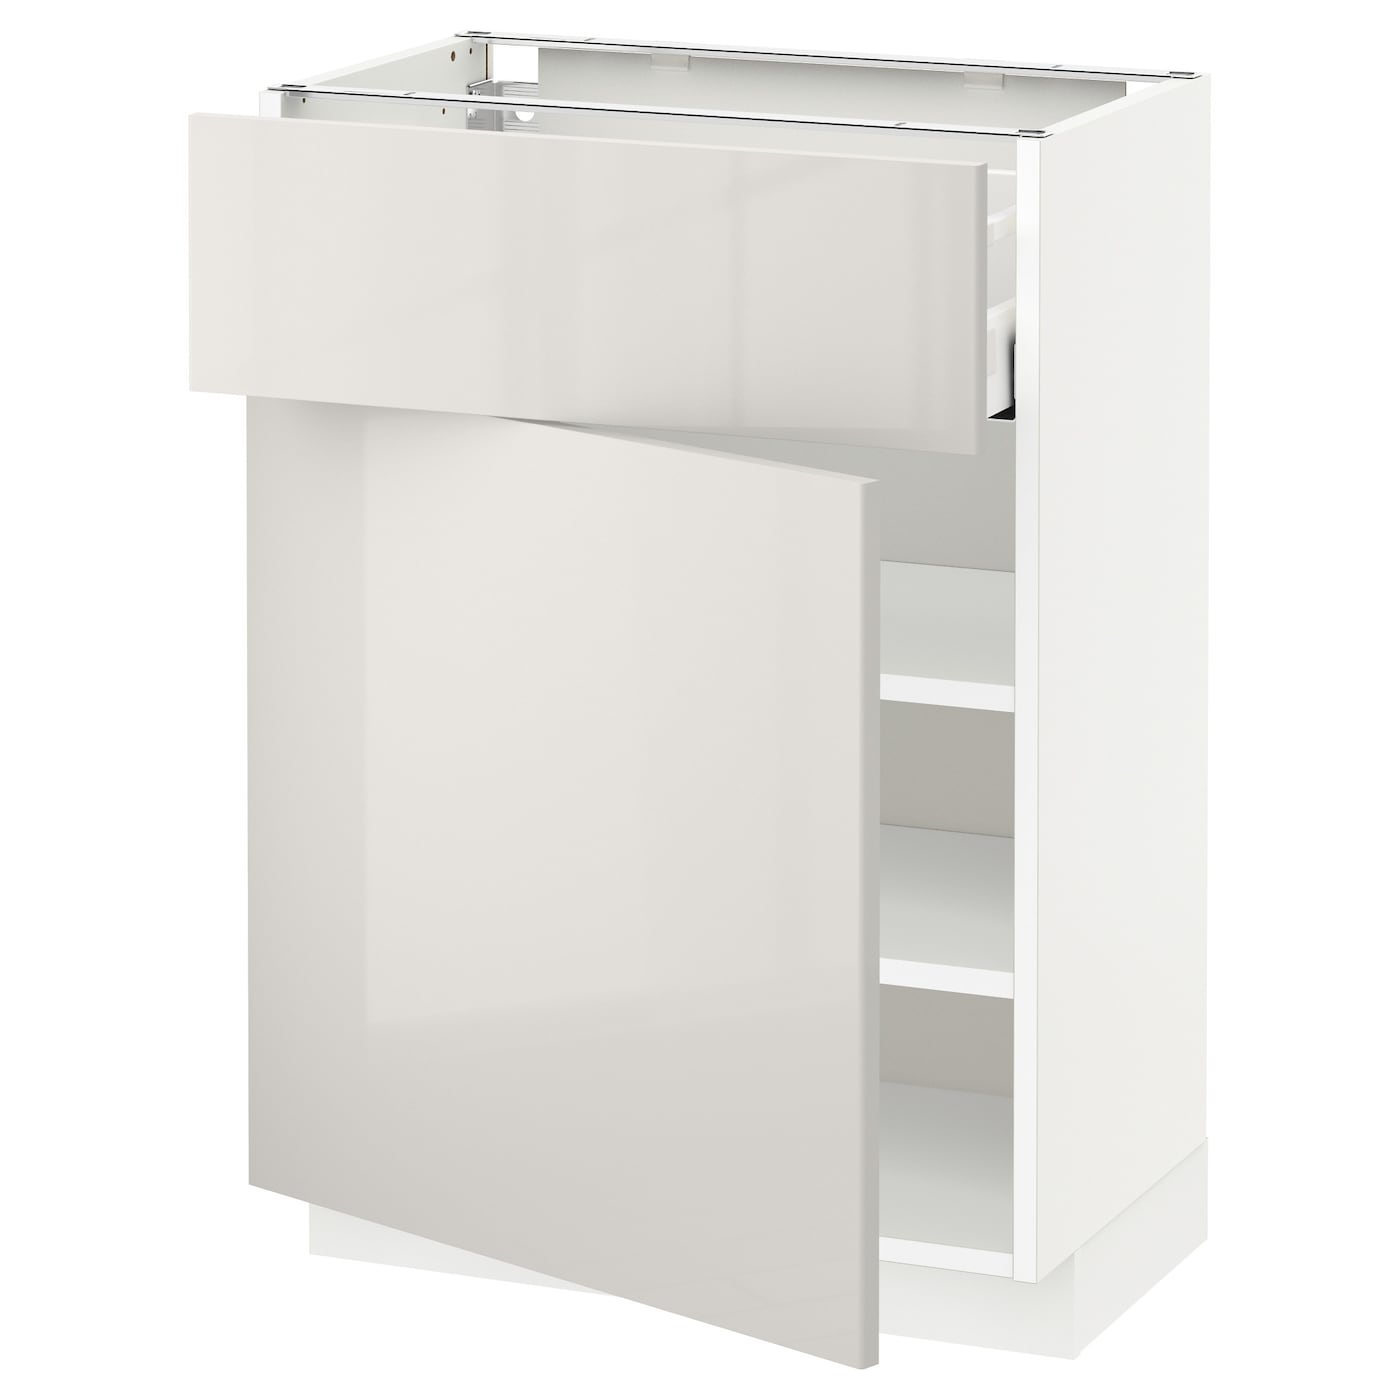 Ringhult Grey Kitchen: METOD/MAXIMERA Base Cabinet With Drawer/door White